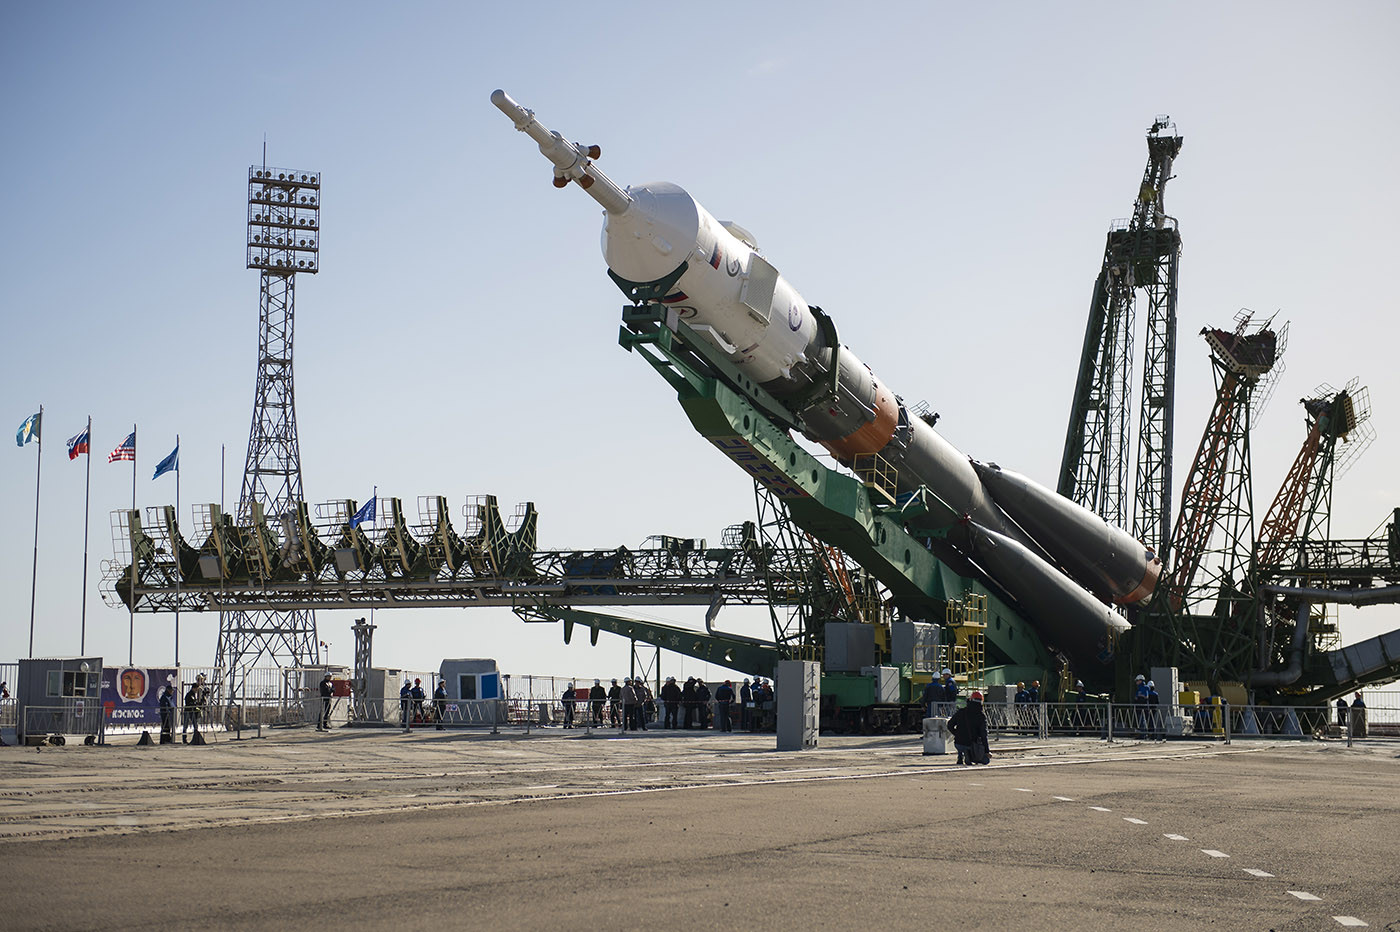 The Soyuz MS-04 spacecraft is raised into position on the launch pad Monday, April 17, 2017, at the Baikonur Cosmodrome in Kazakhstan. (AP Photo)